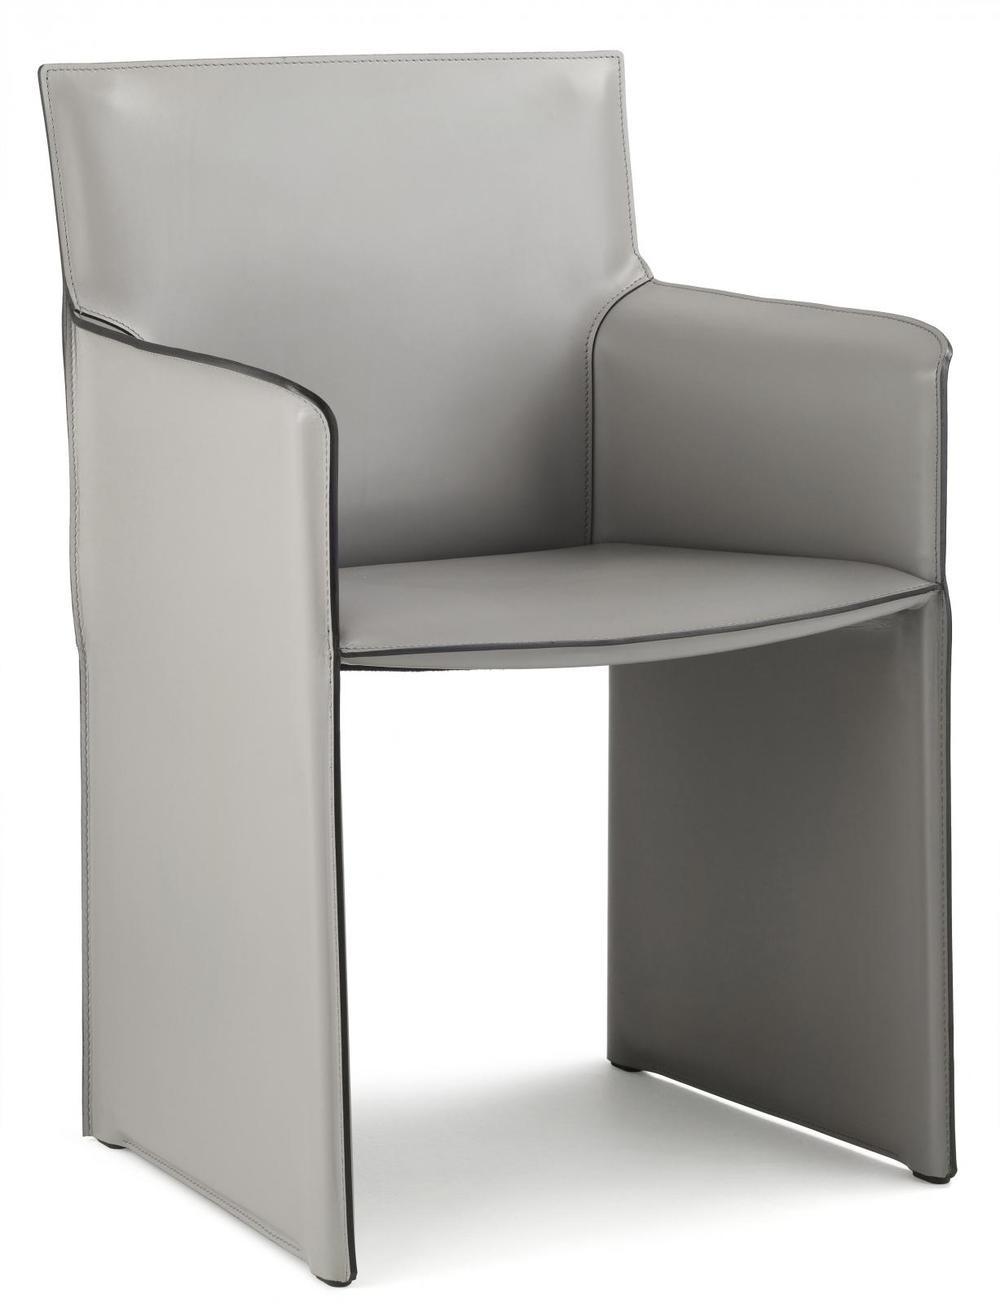 modern-leather-chairs-italian-furniture (31).jpg